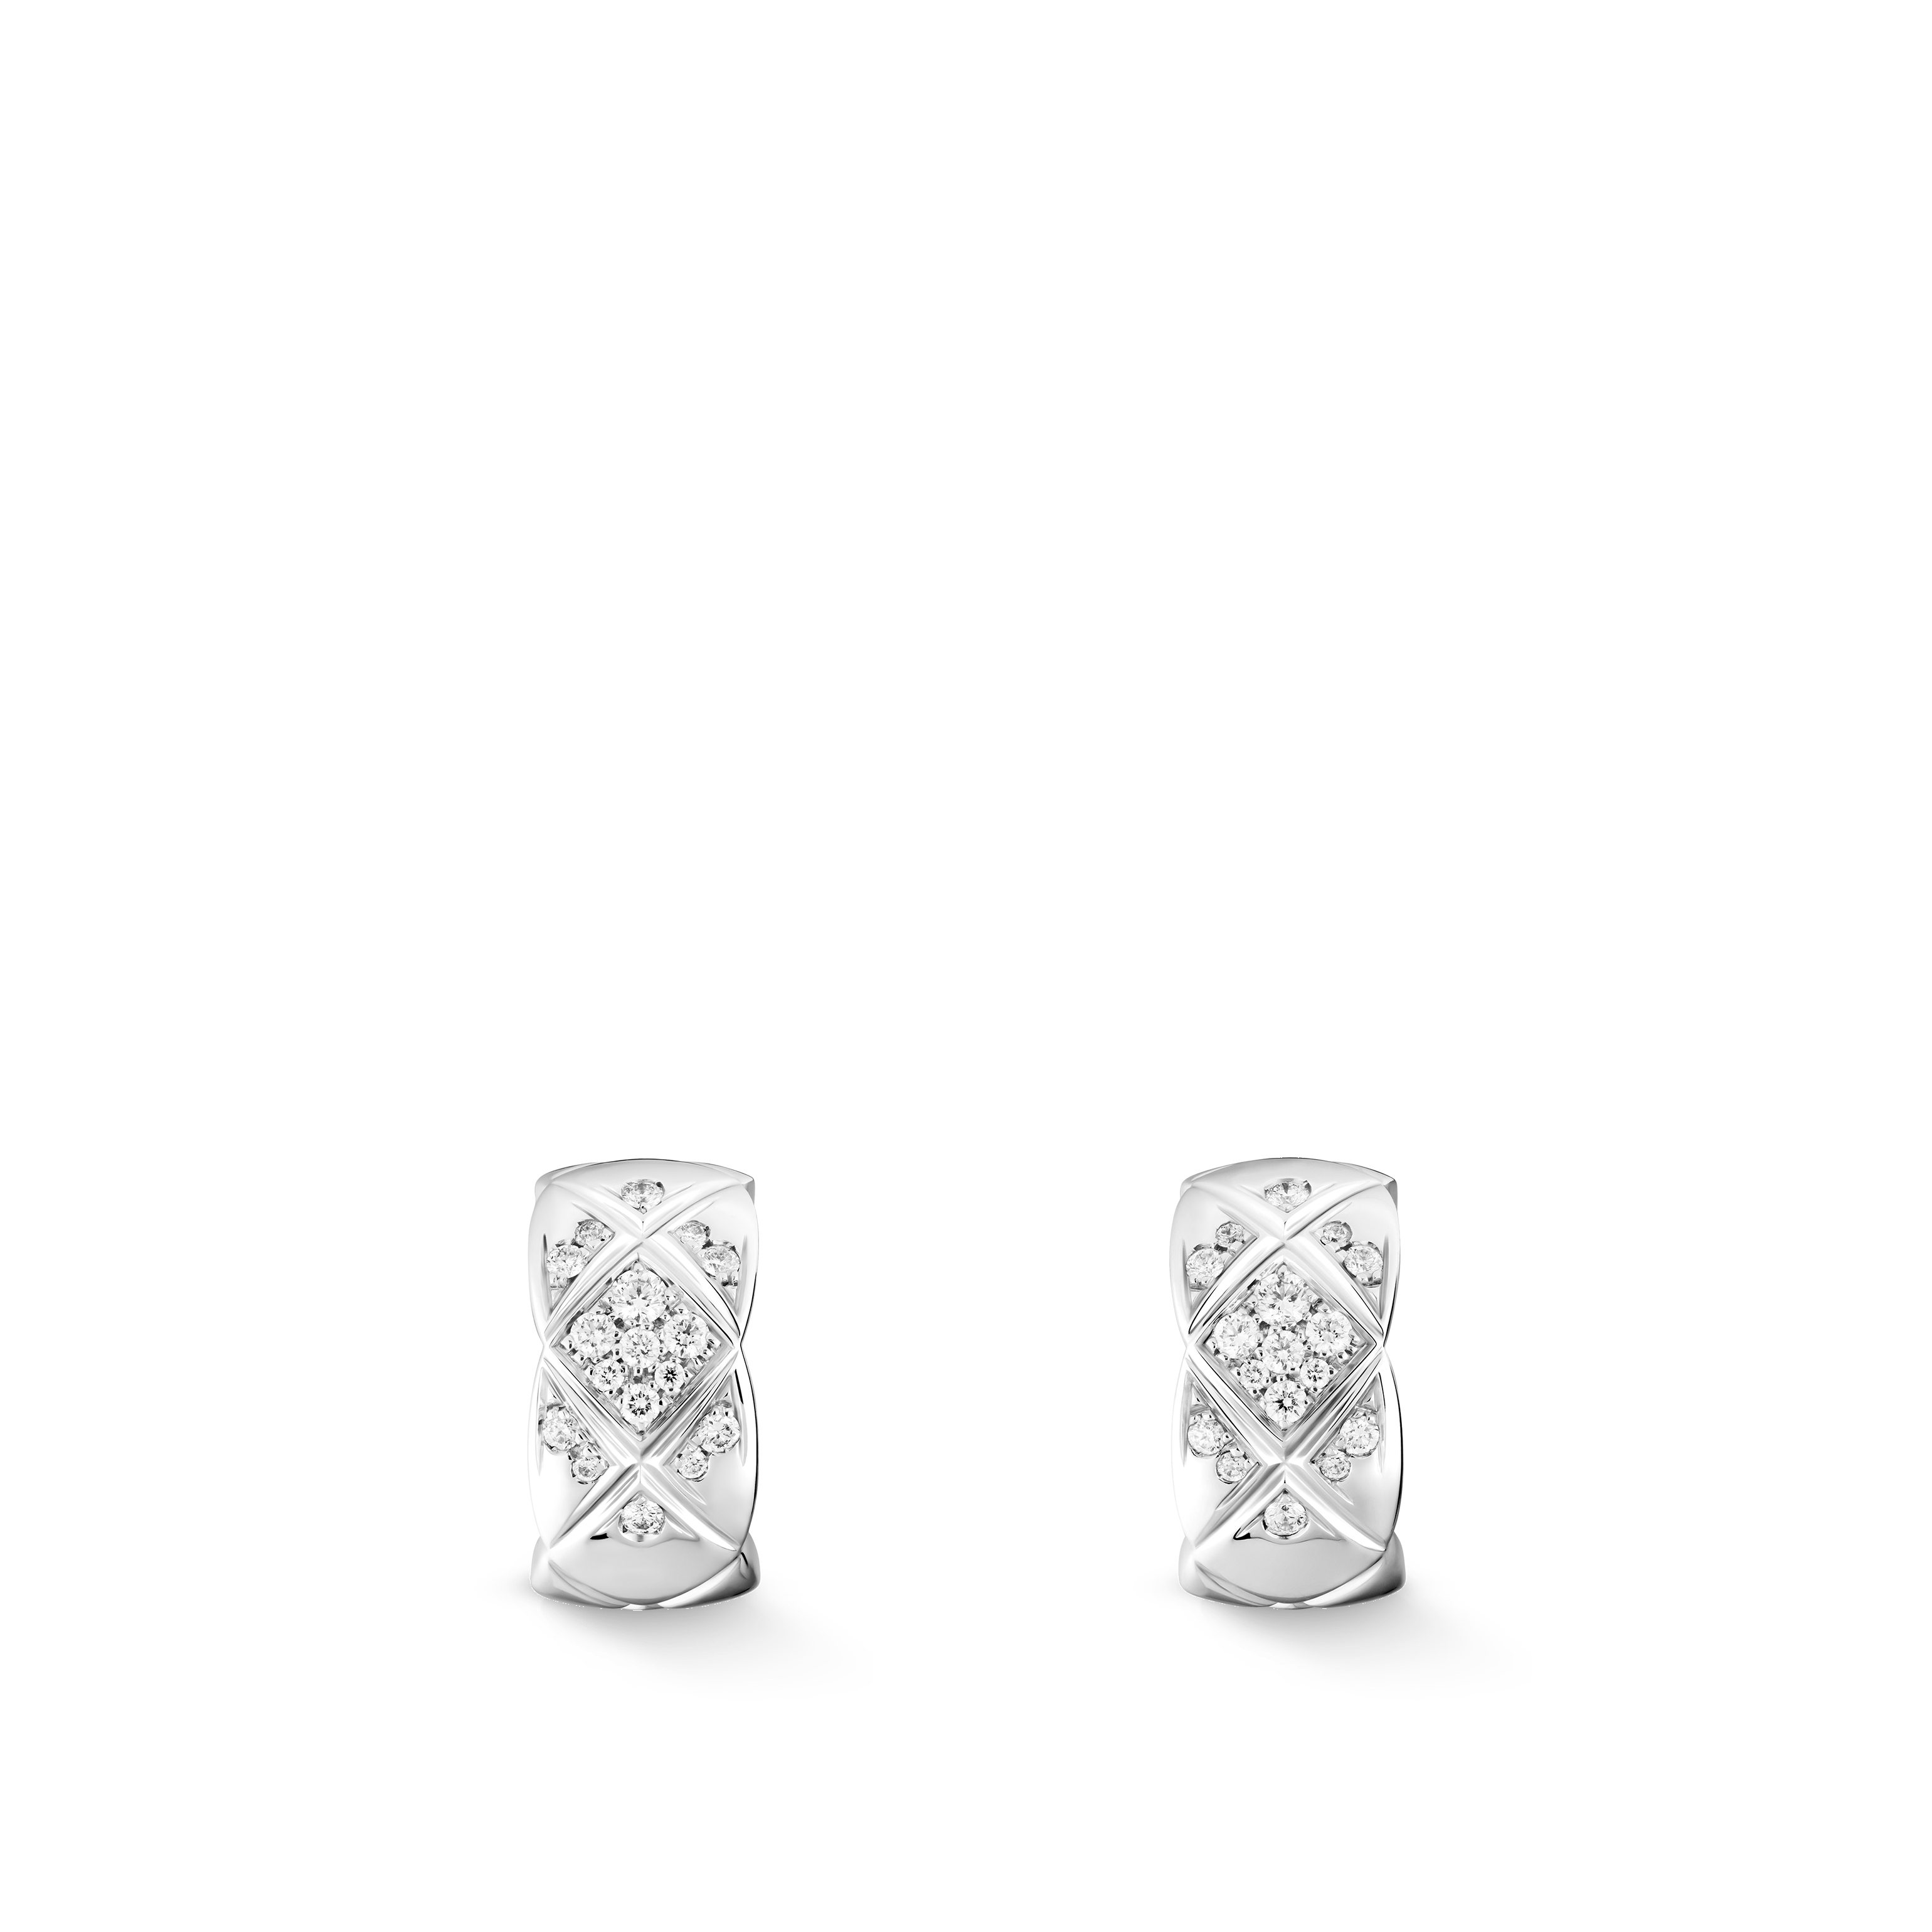 Coco Crush earrings - Quilted motif, 18K white gold, diamonds - CHANEL - Default view - see standard sized version